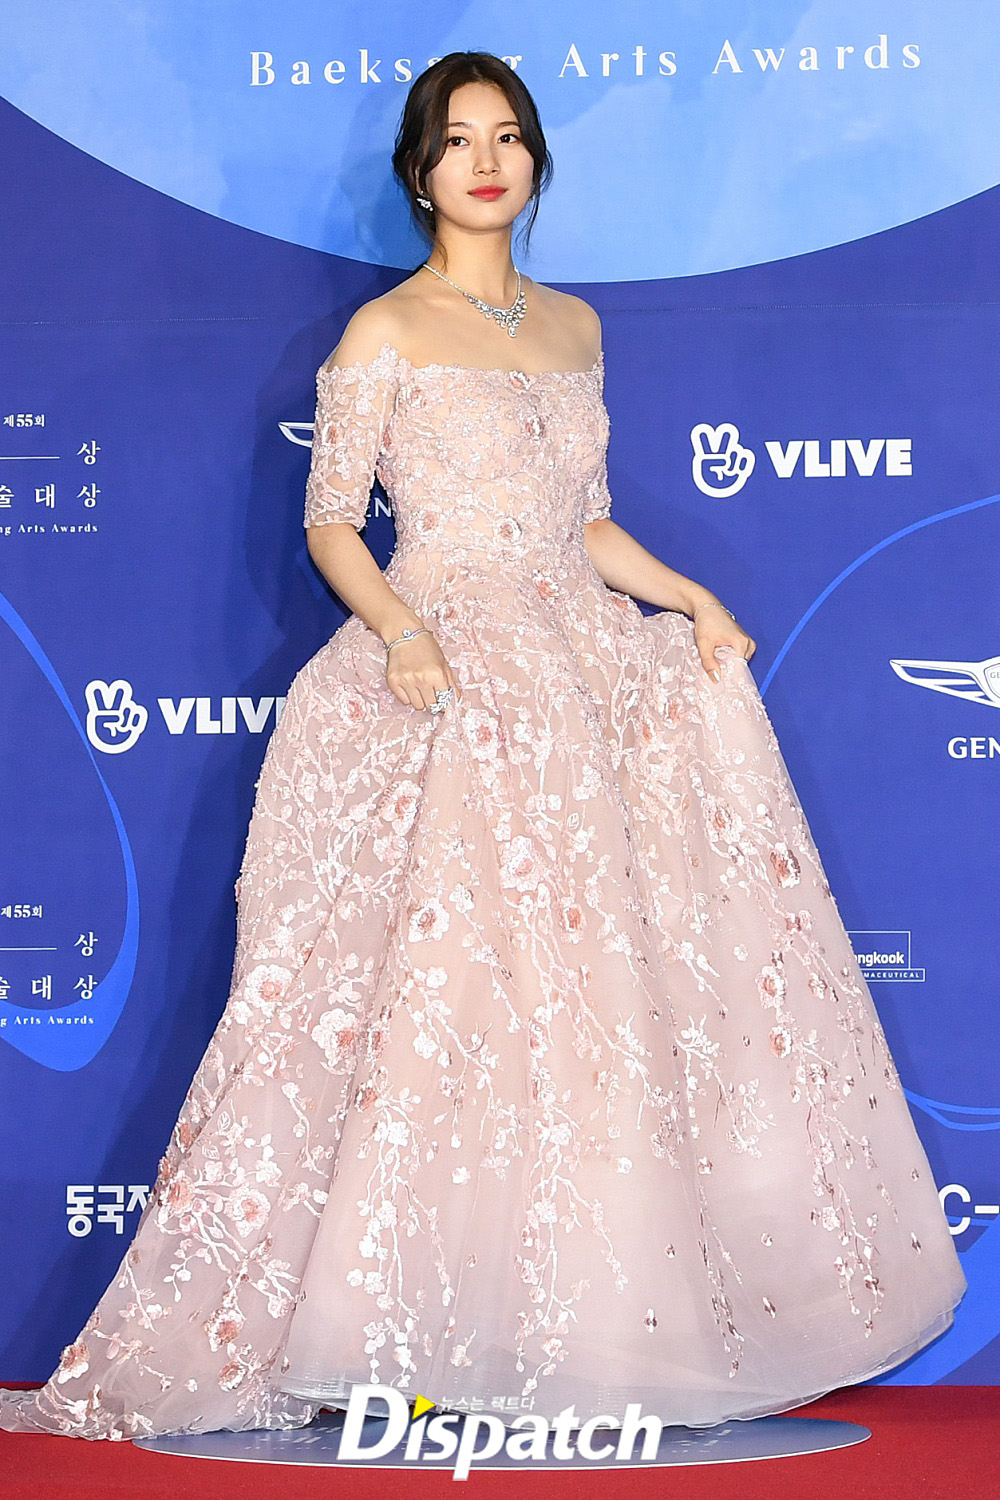 55th BaekSang Arts Awards Red Carpet, korean actresses dresses, suzy baeksang